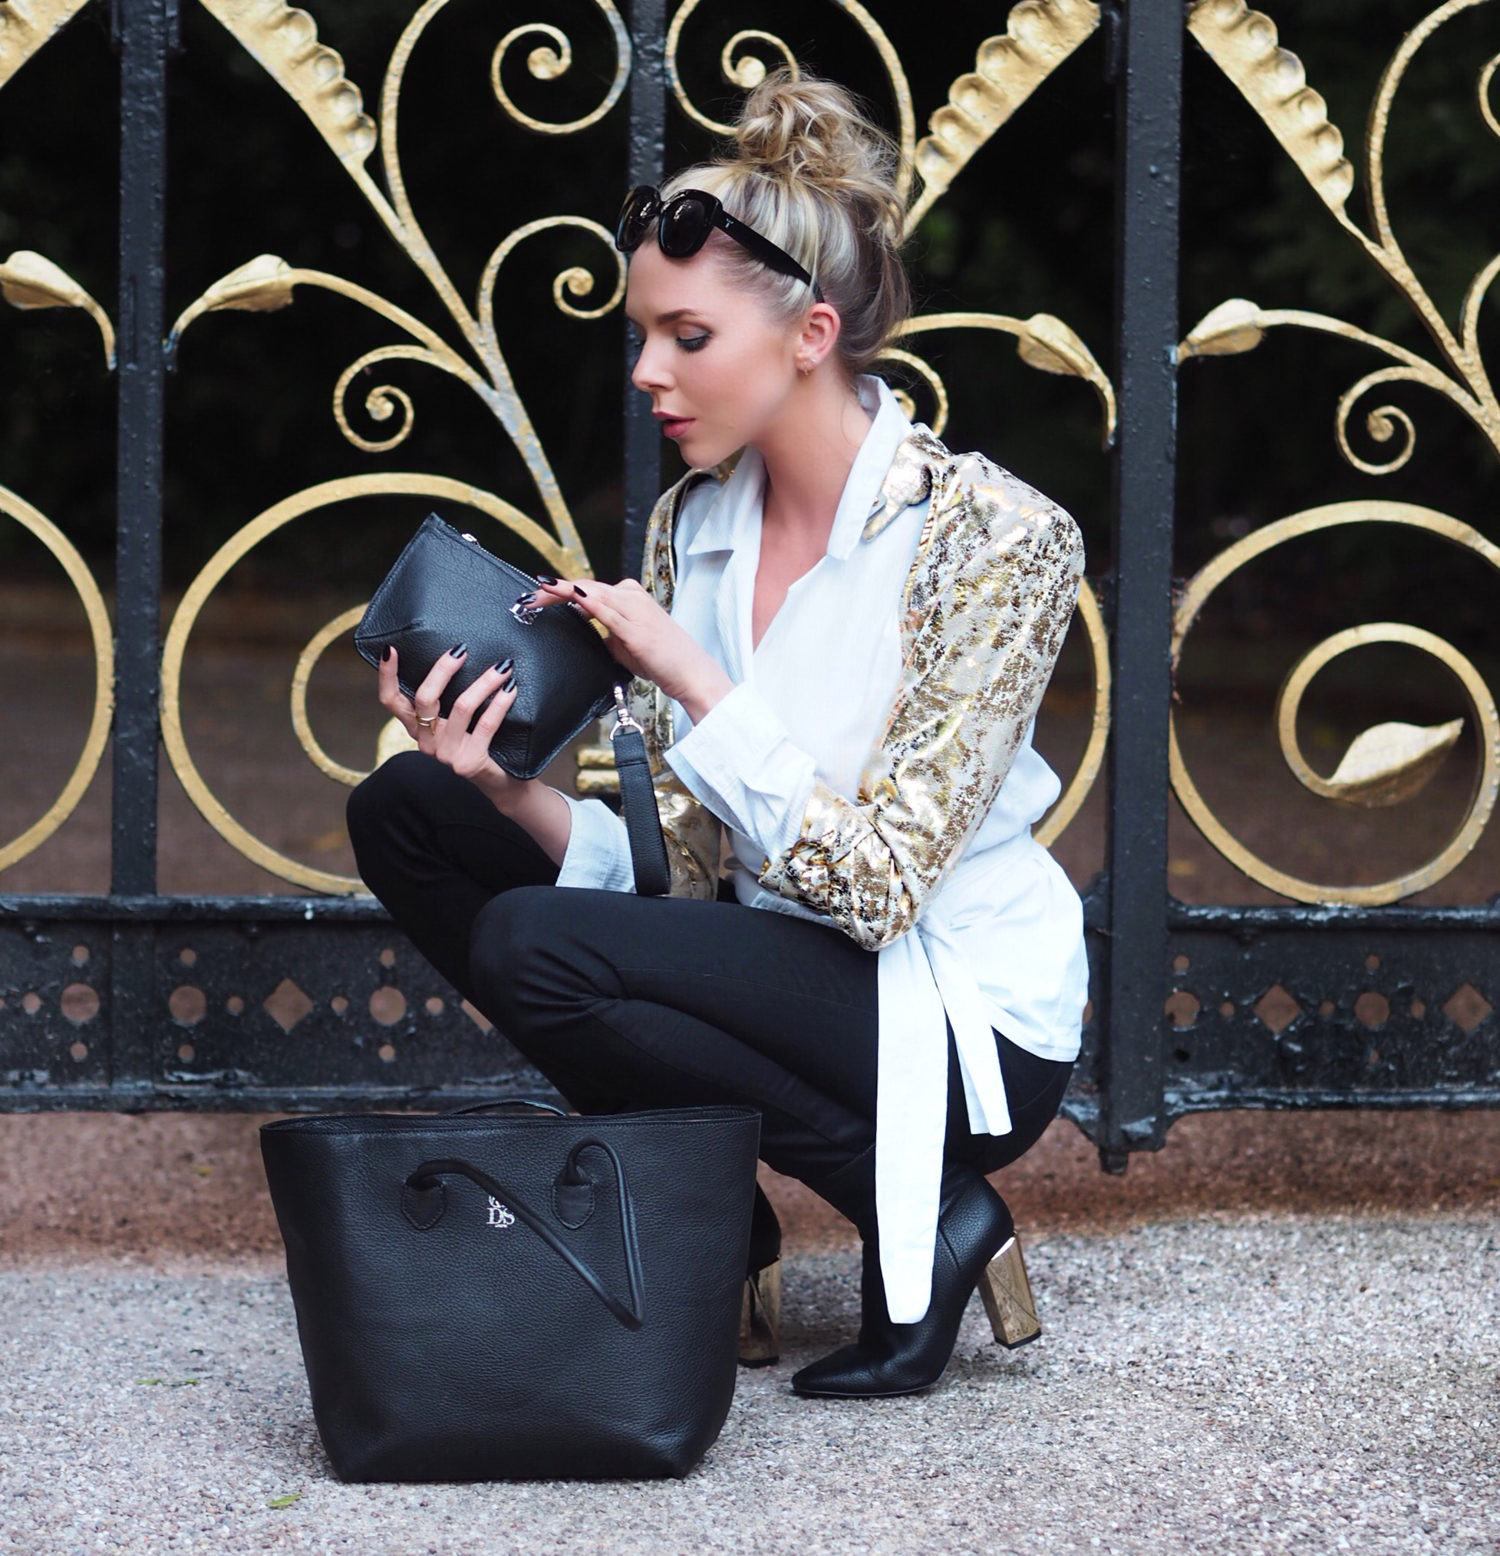 gold darkstar, london fashion week, blogger, style, laura blair, london fashion girl